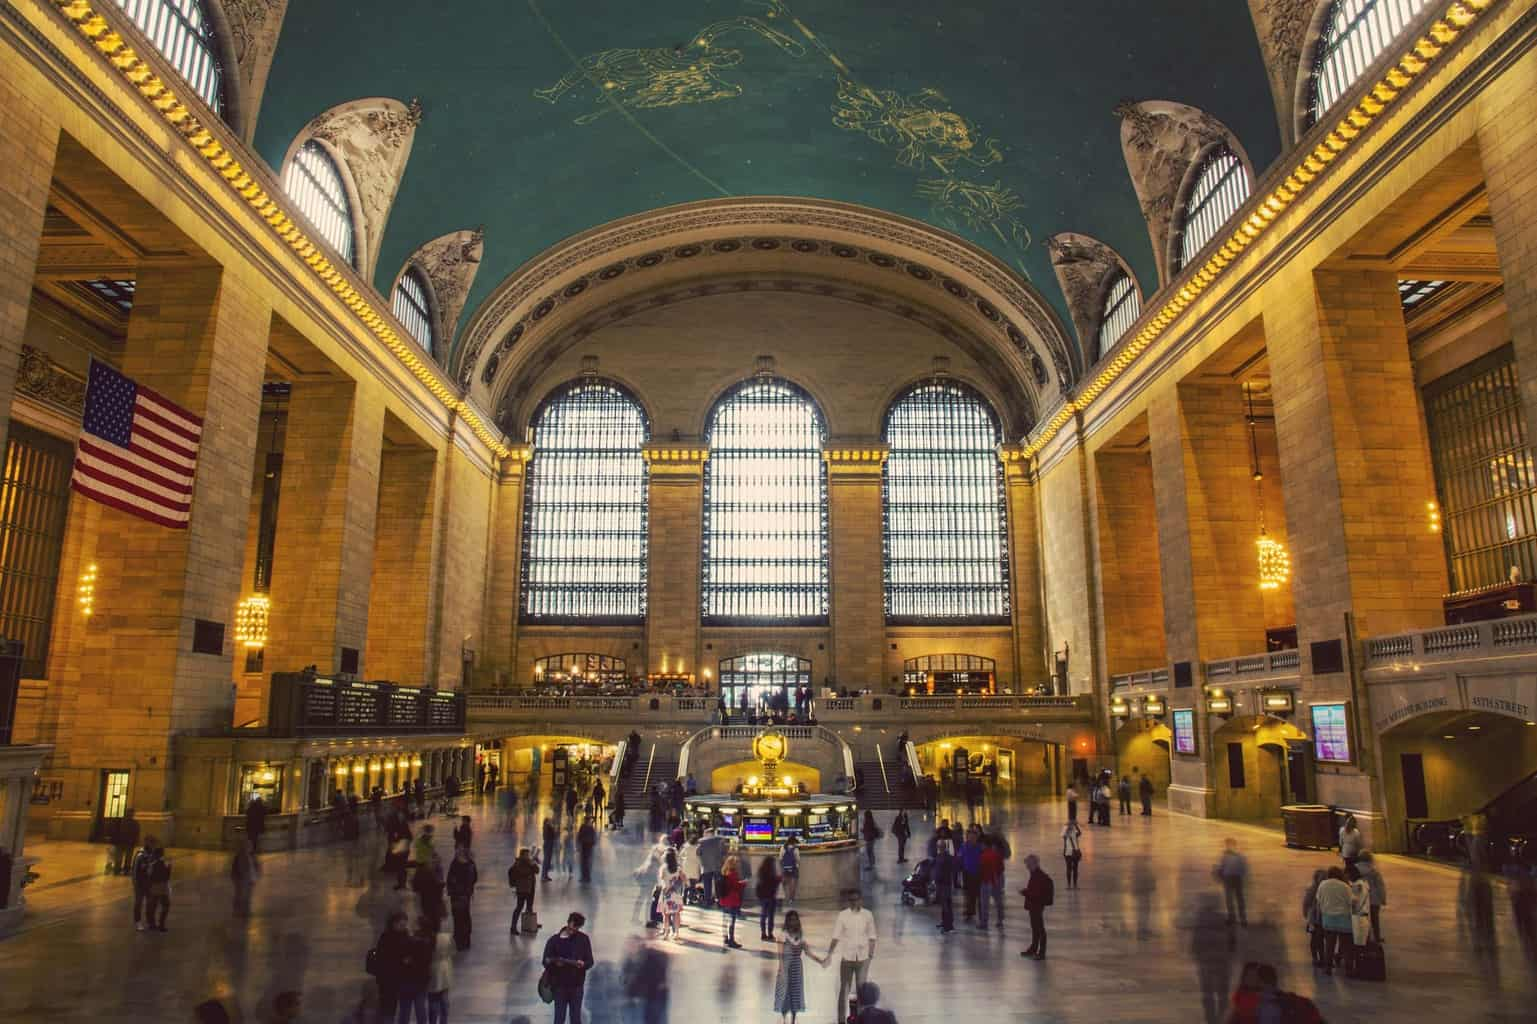 You can't visit New York City without sopping at Grand Central Terminal.